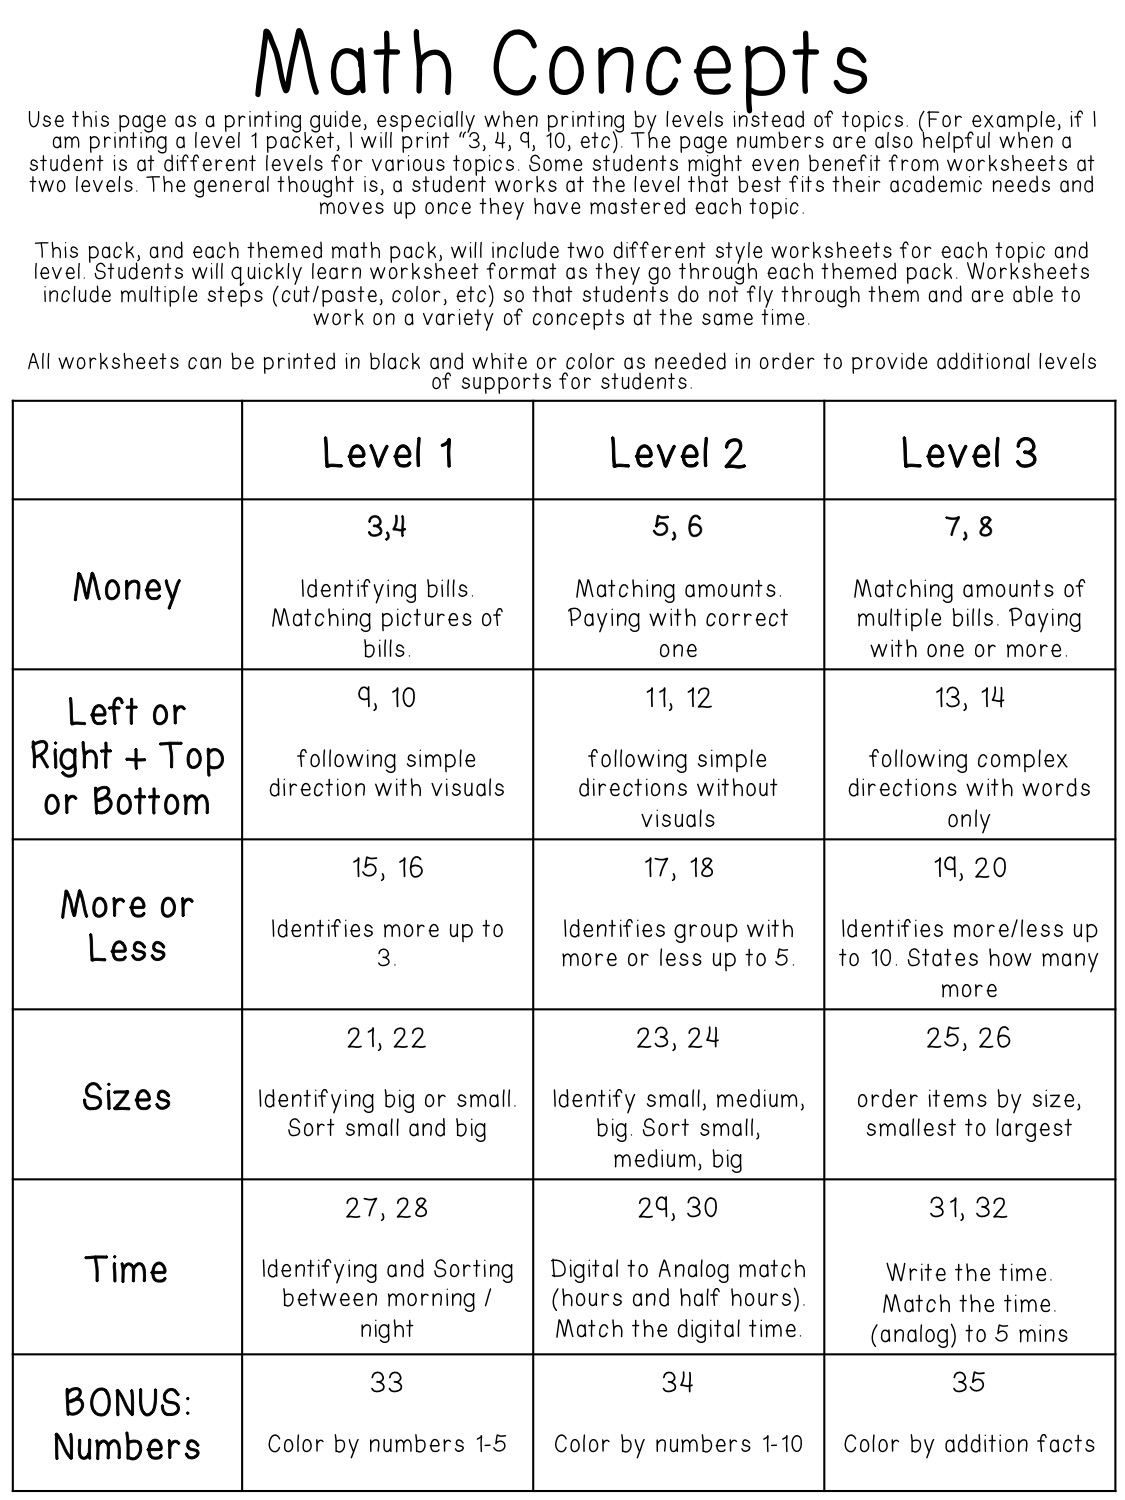 Life Skills Printable Worksheets For Adults That Are